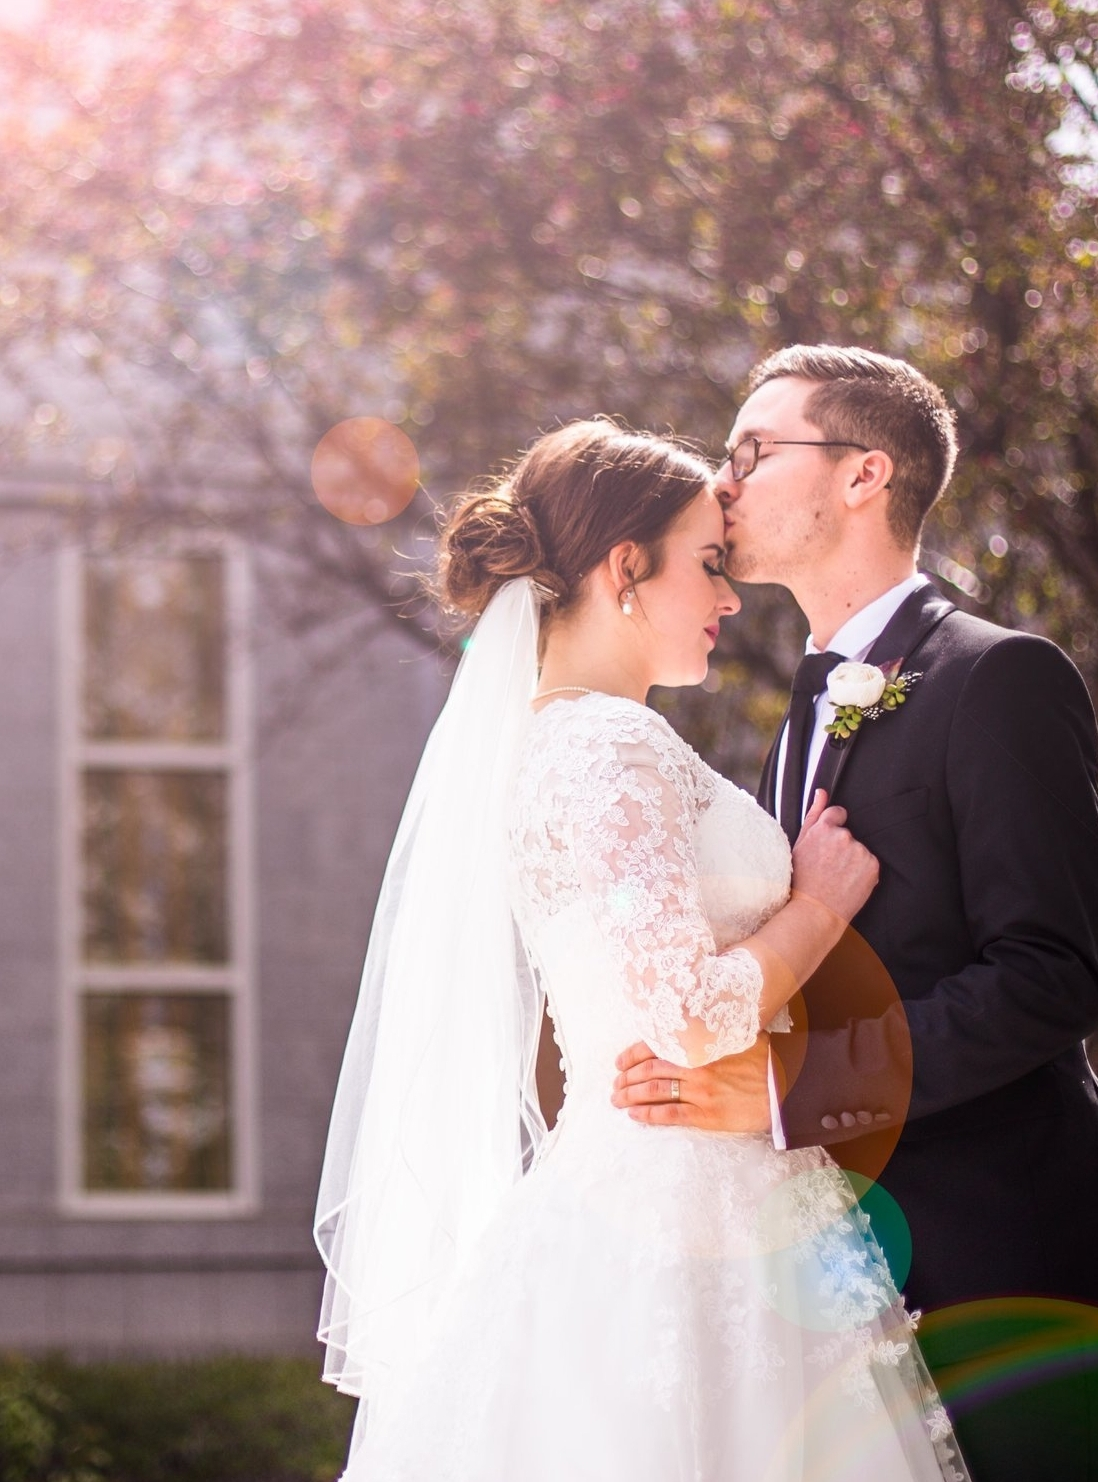 Wedding media - Our goal is to help make that special day perfect by providing a variety of multimedia services. Some of the services we offer include invitations and wedding signage, photography and videography. Contact us for a custom quote